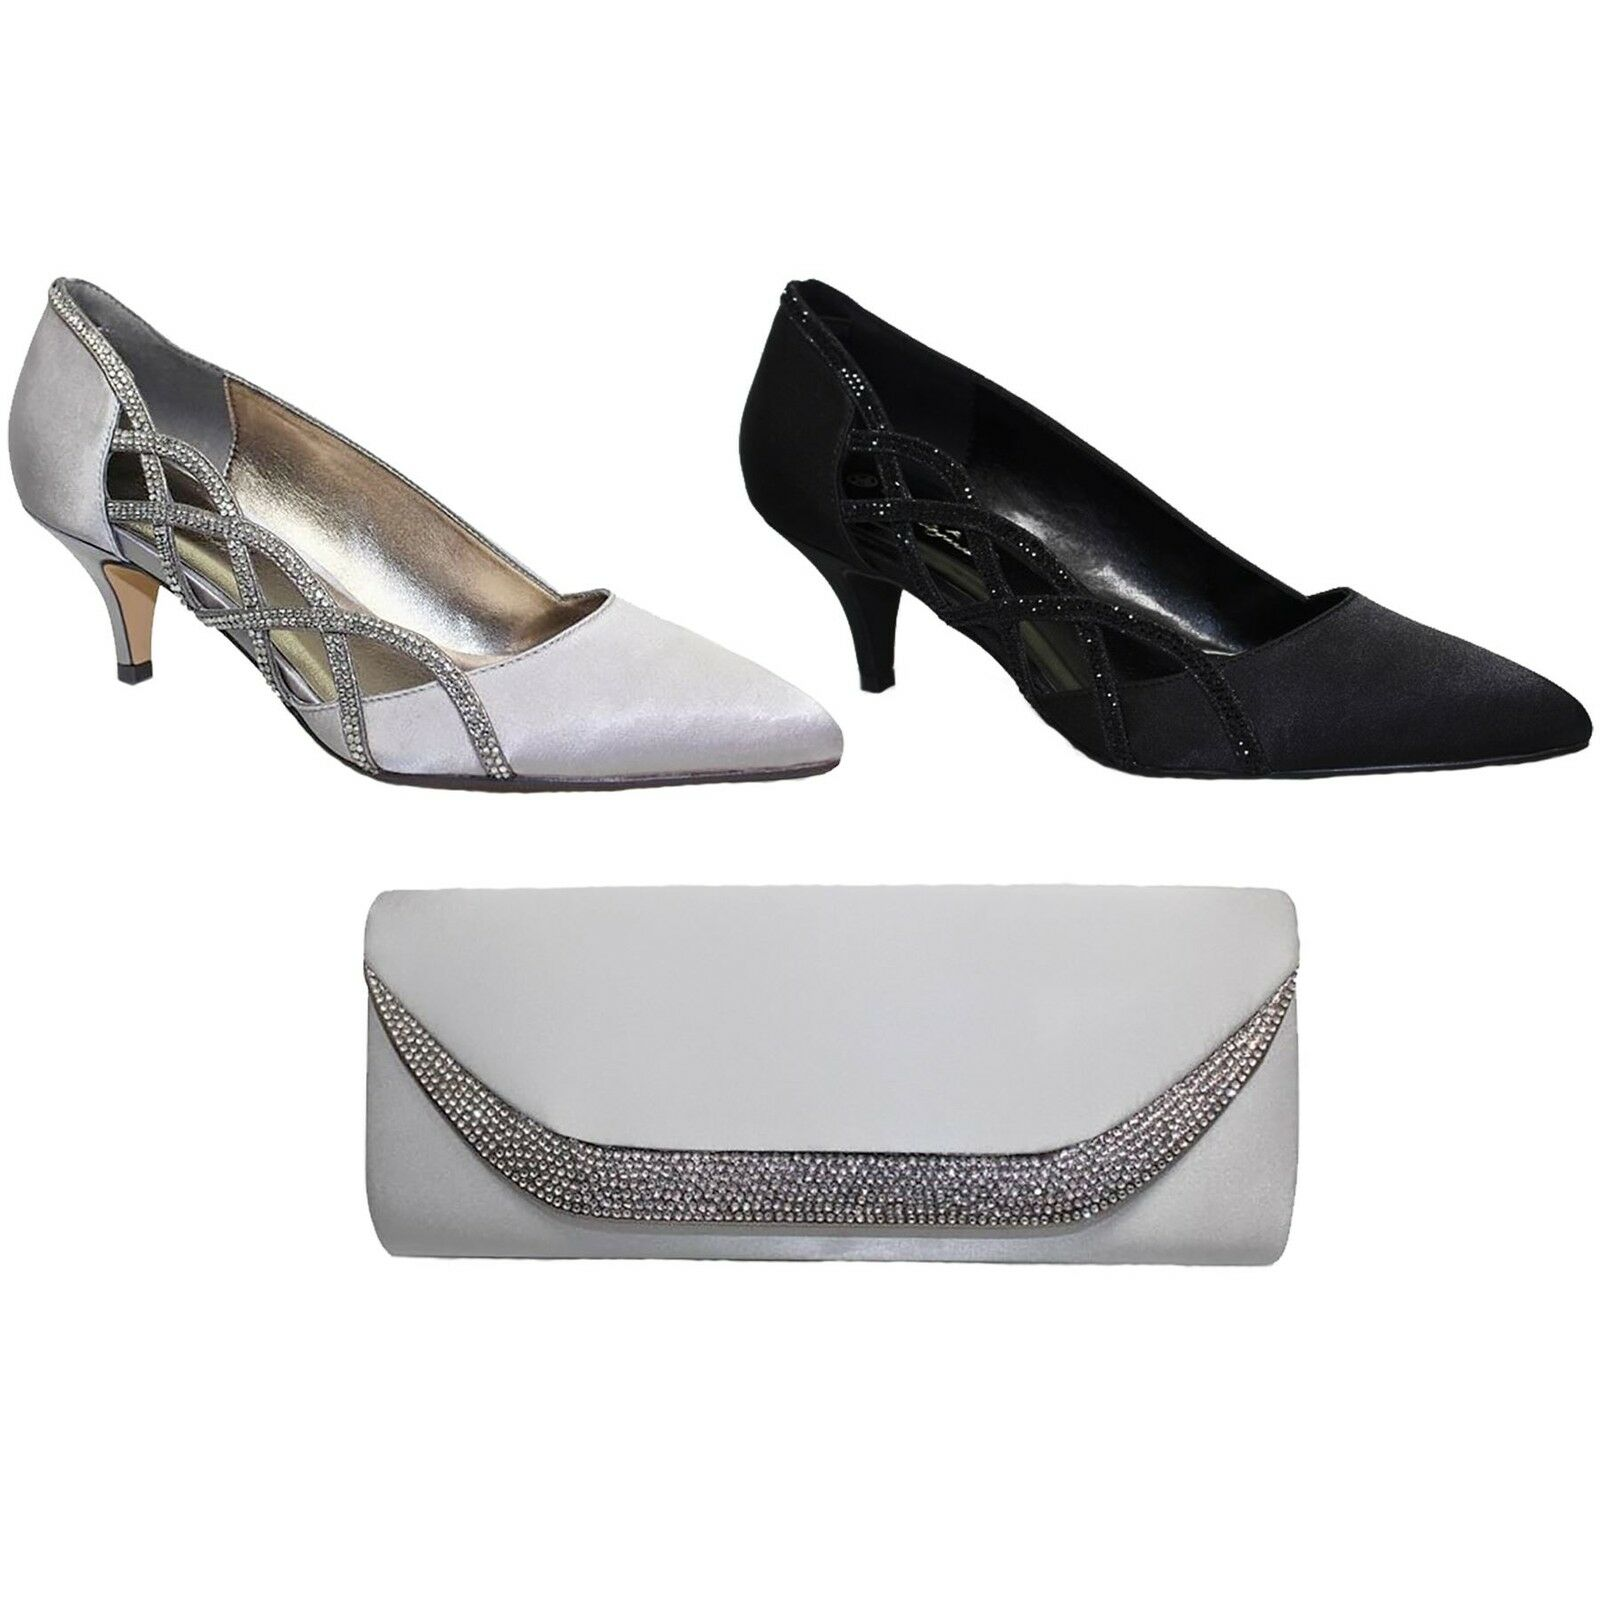 FLR365 Honor Slip On Pointed Toe Satin Feel Diamante Court Schuhe Heel Clutch